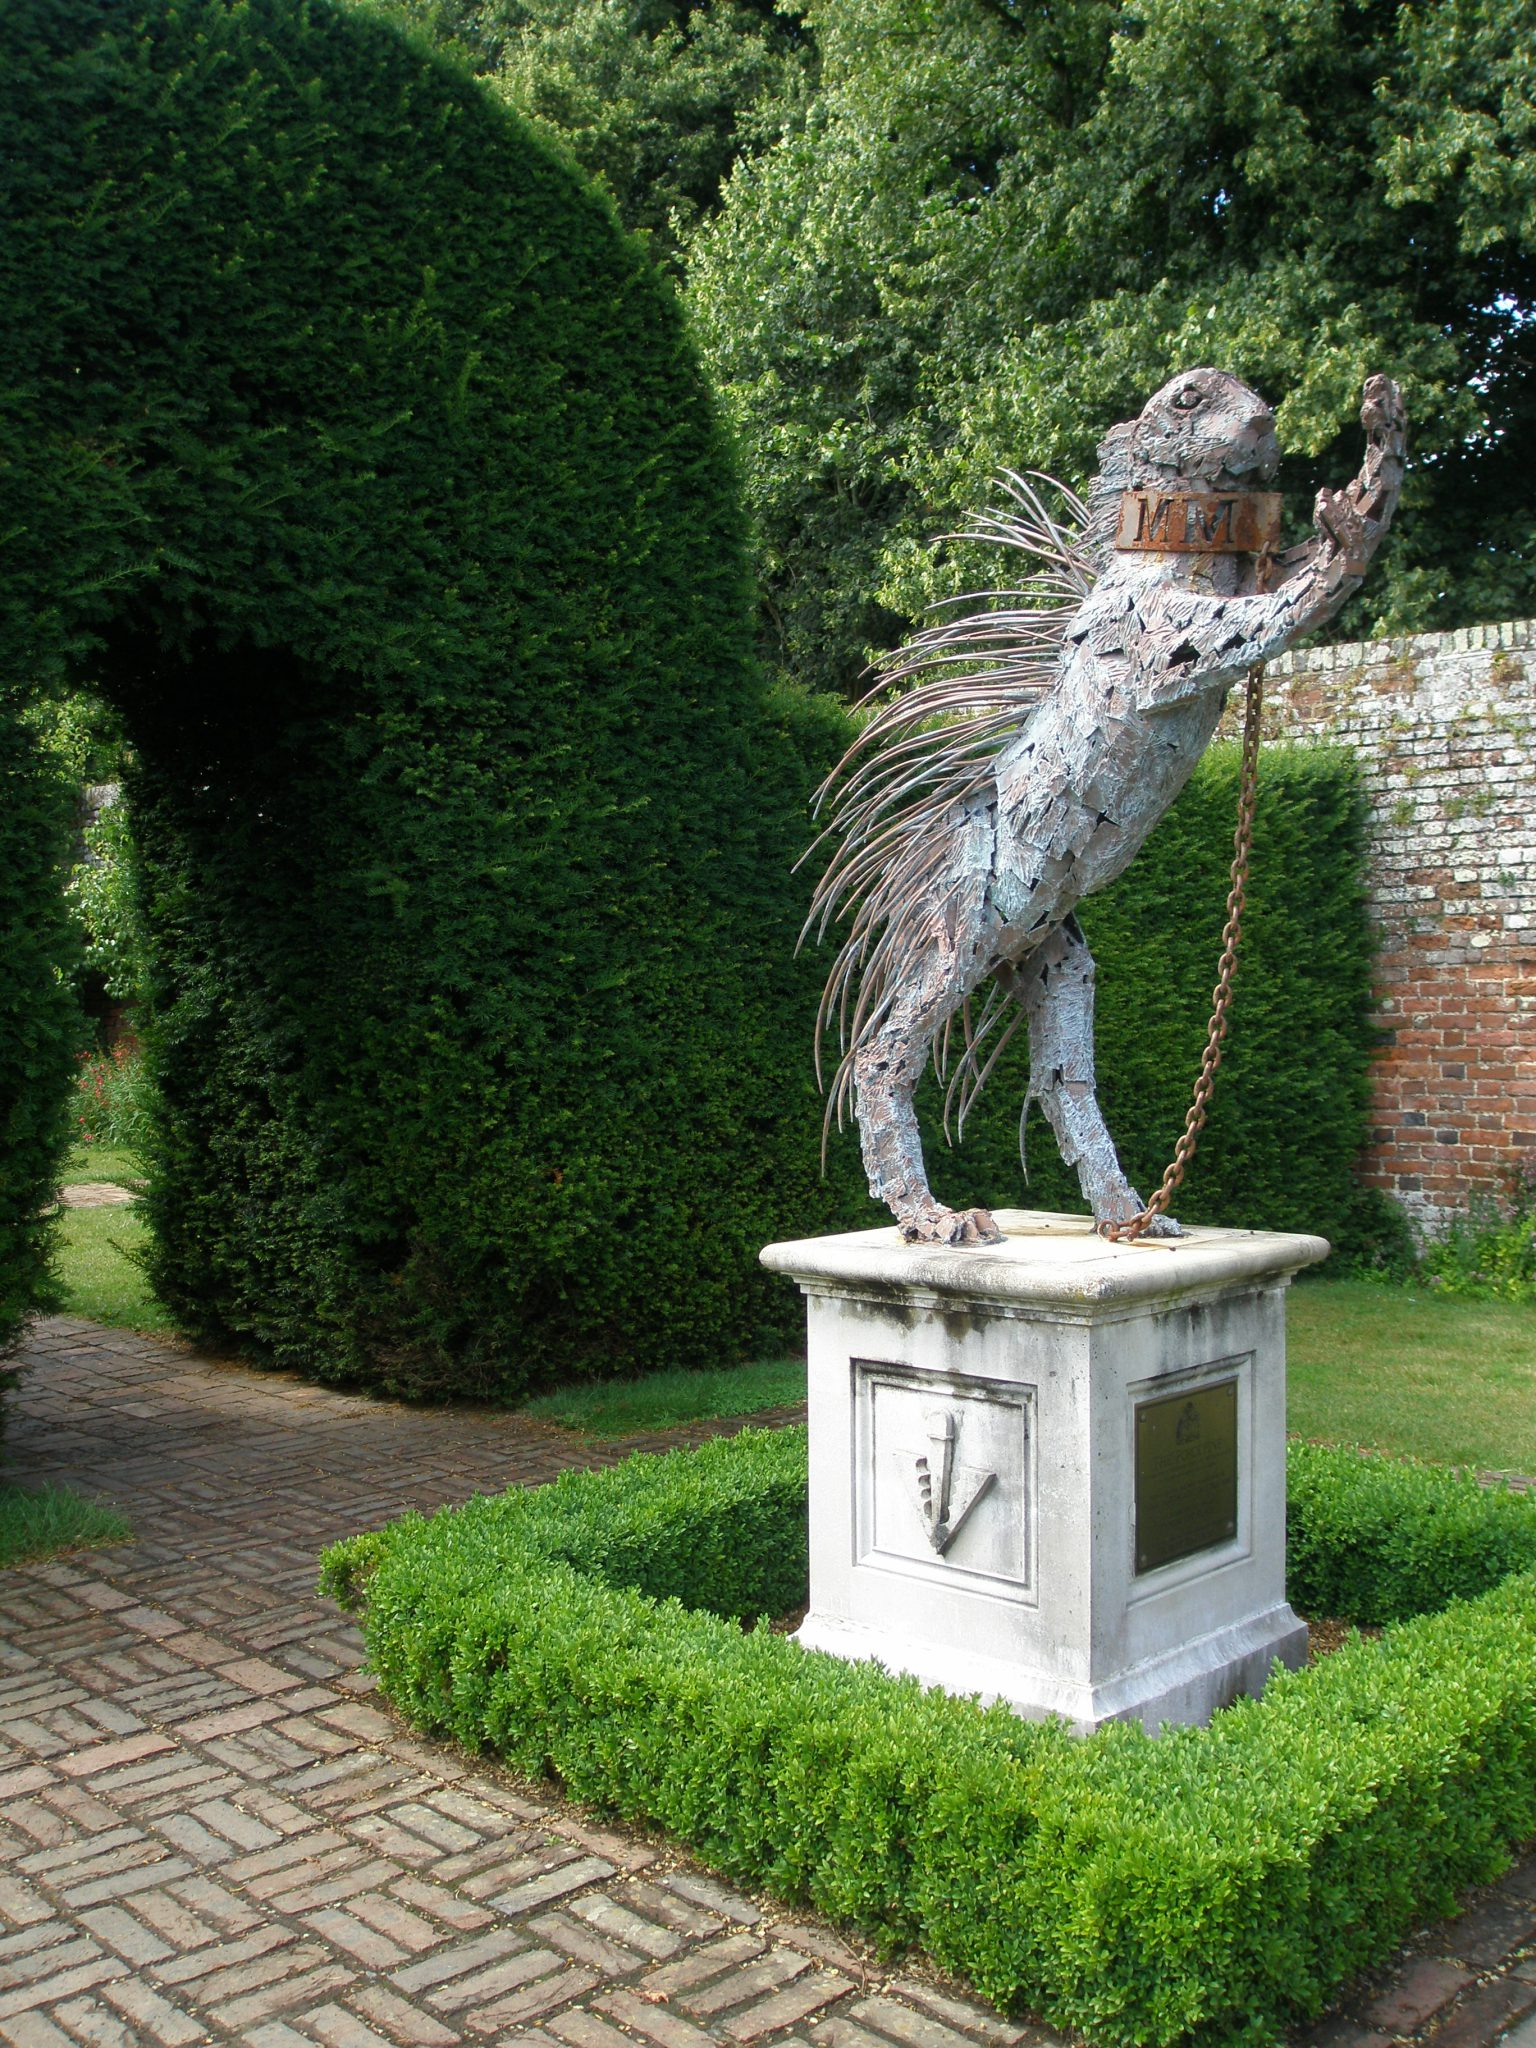 The Porcupine on the Sidney Family Crest is embodied in this large sculpture, which was commissioned to celebrate the millennium, and made by Robert Rattray. The stone base bears a Pheon, or Broad Arrow, which is the Sidney Coat of Arms